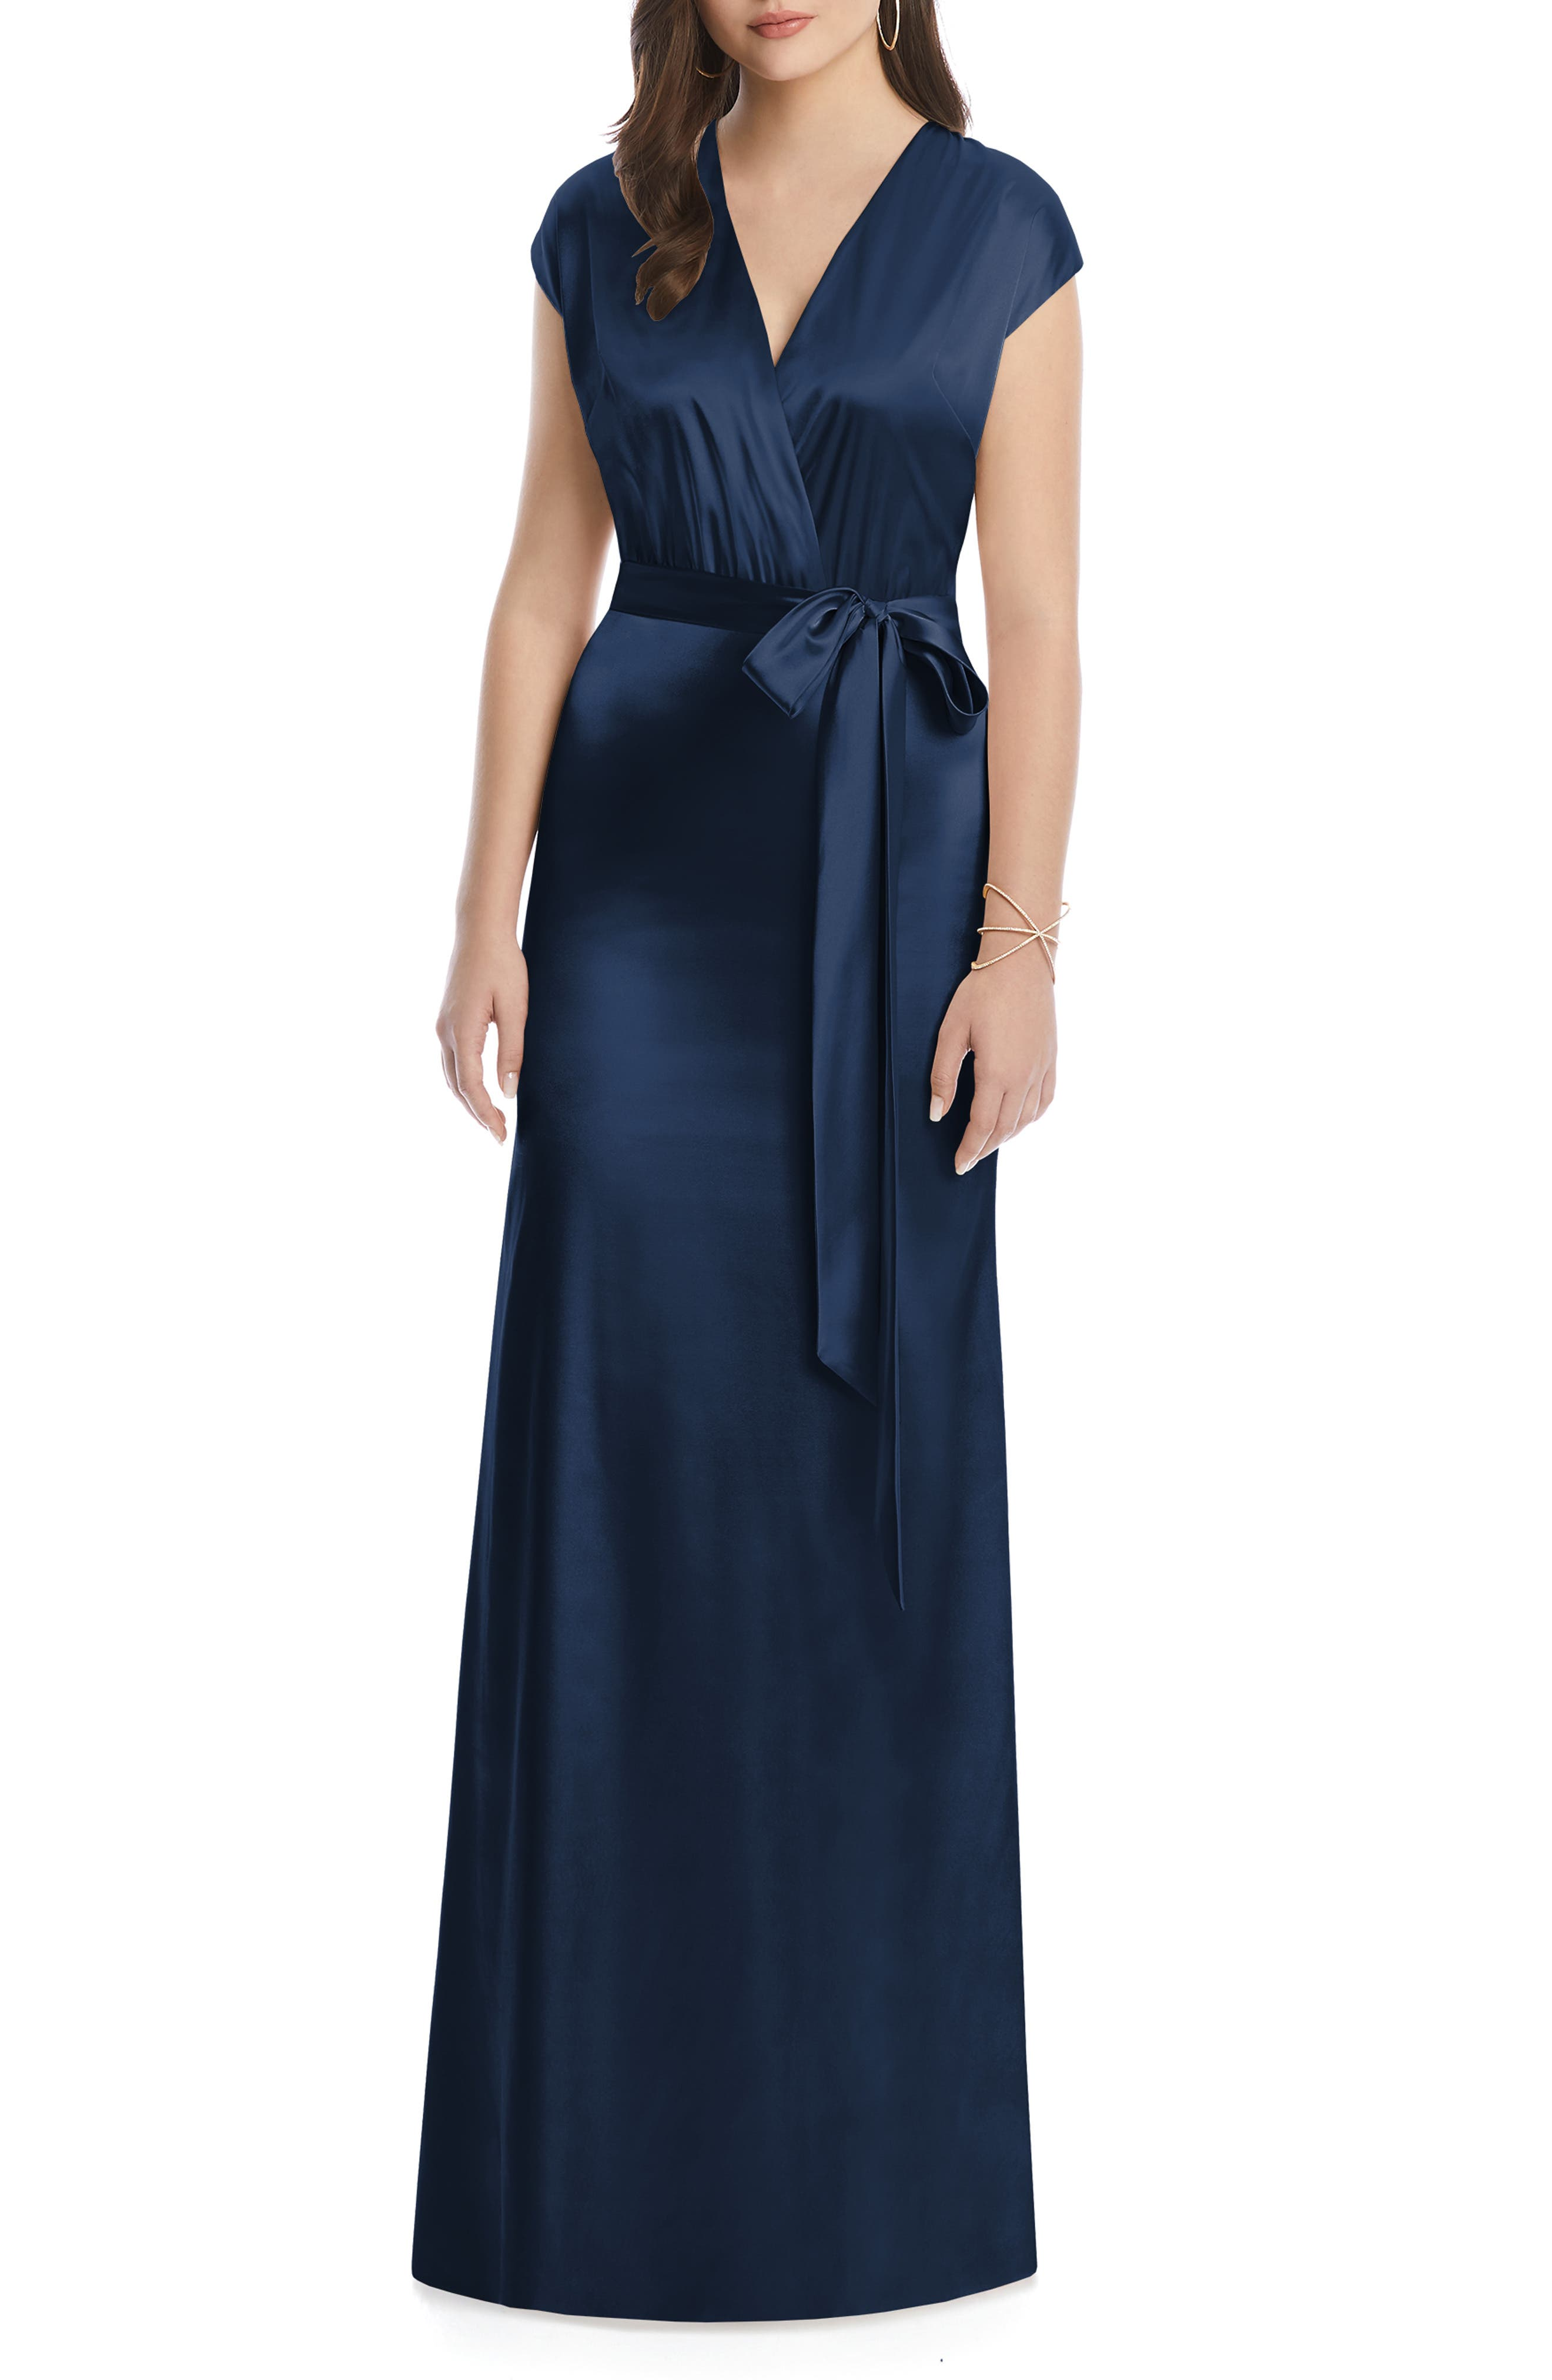 DESSY COLLECTION, V-Neck Stretch Chameuse Gown, Alternate thumbnail 3, color, MIDNIGHT